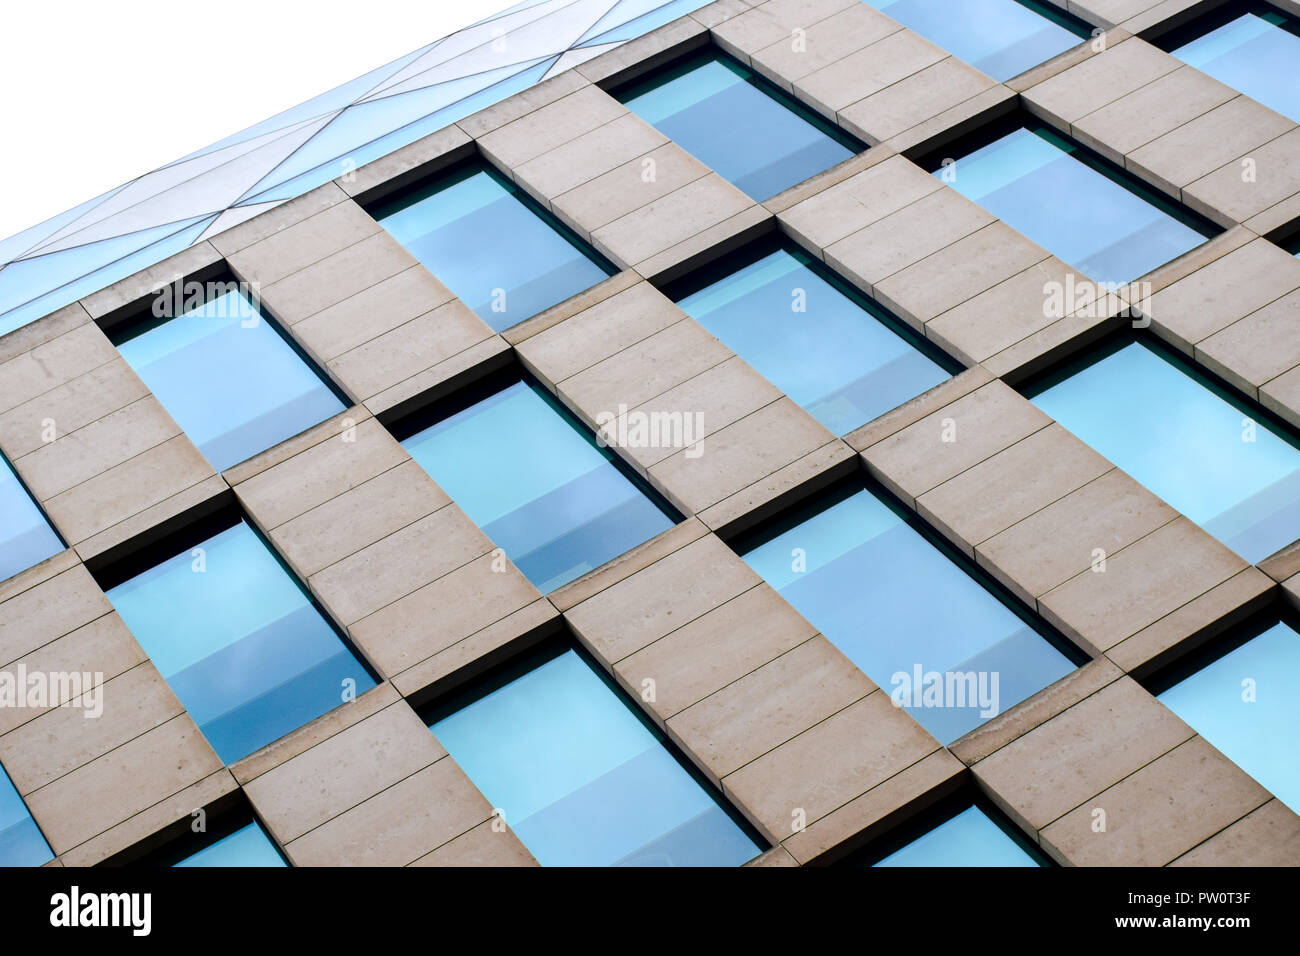 100 Wood Street in London, by Sir Norman Foster and Partners - Stock Image